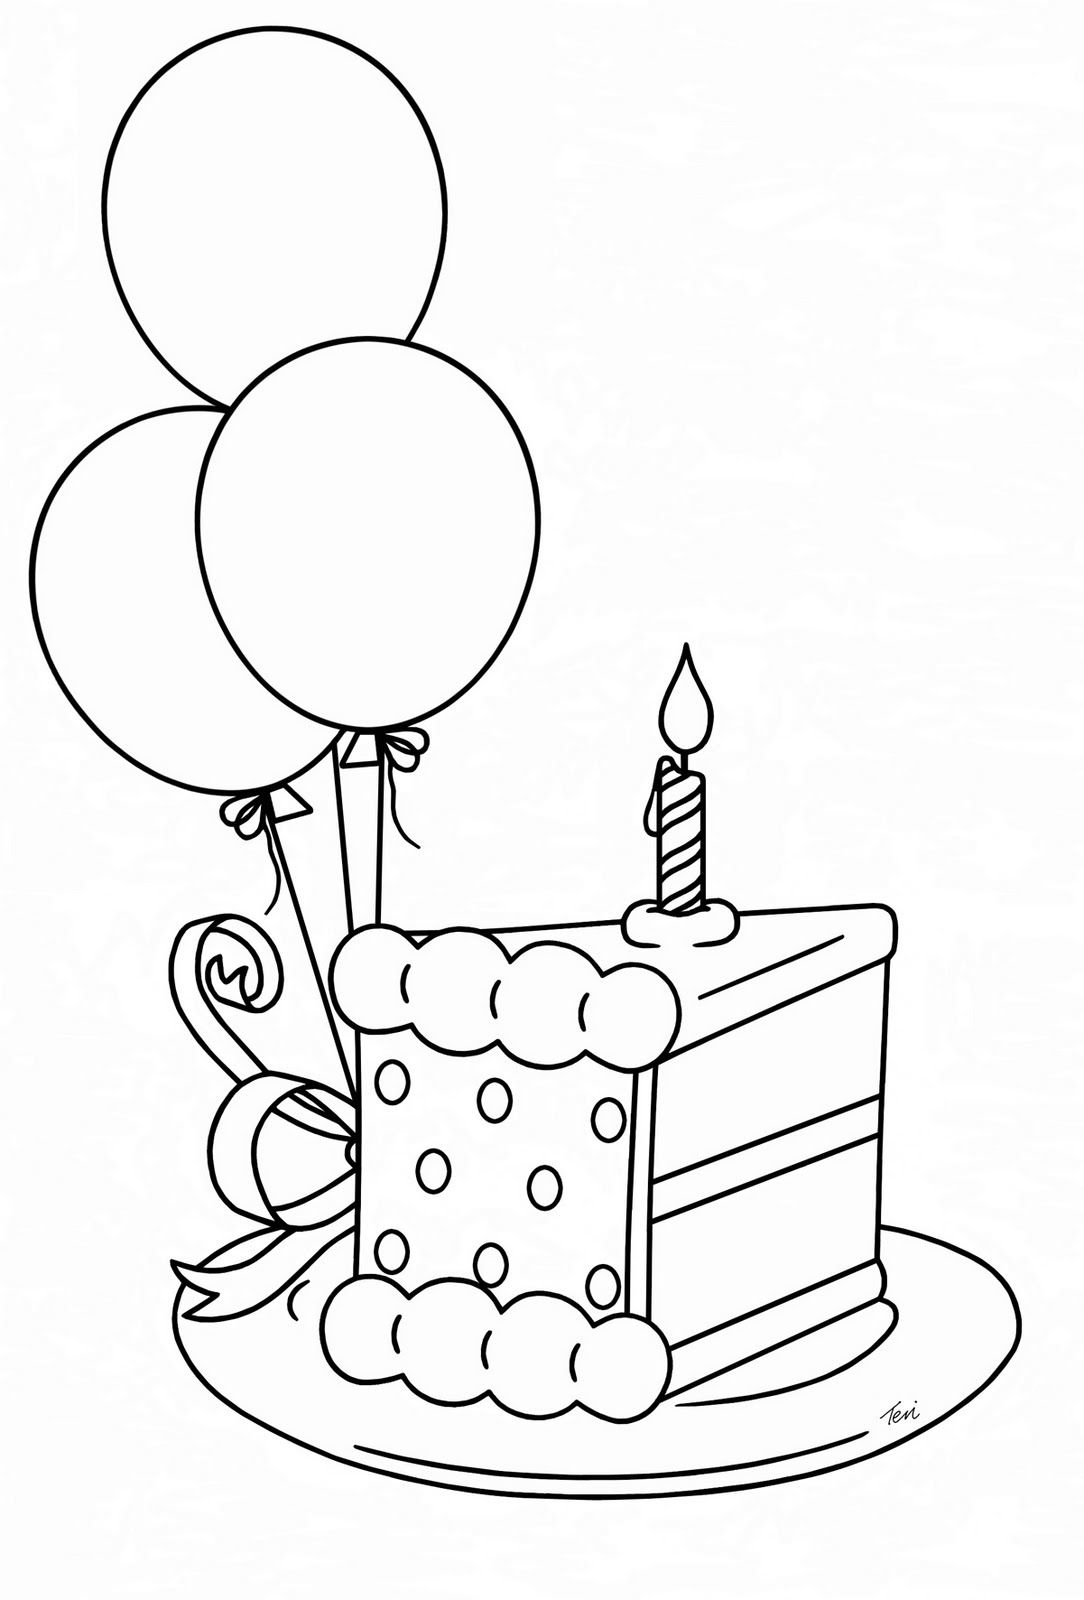 Image result for birthday cake black and white drawing